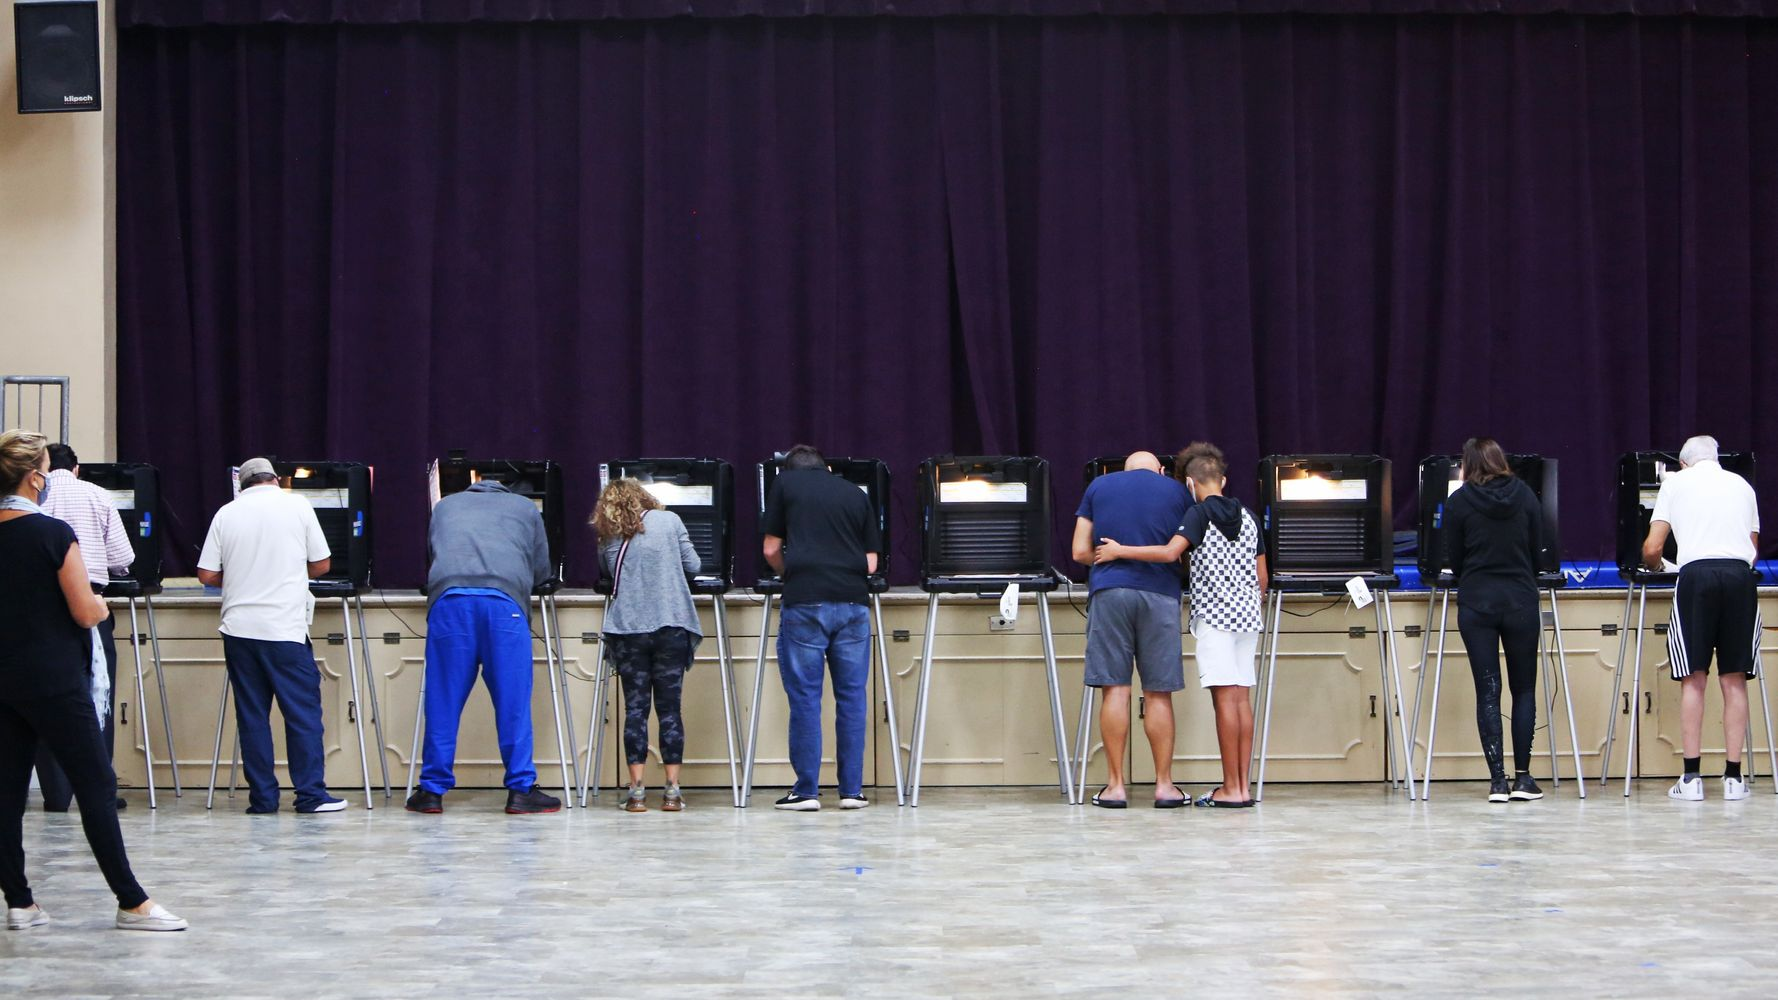 Partisanship is Making Americans Vote For Things They Don't Actually Want